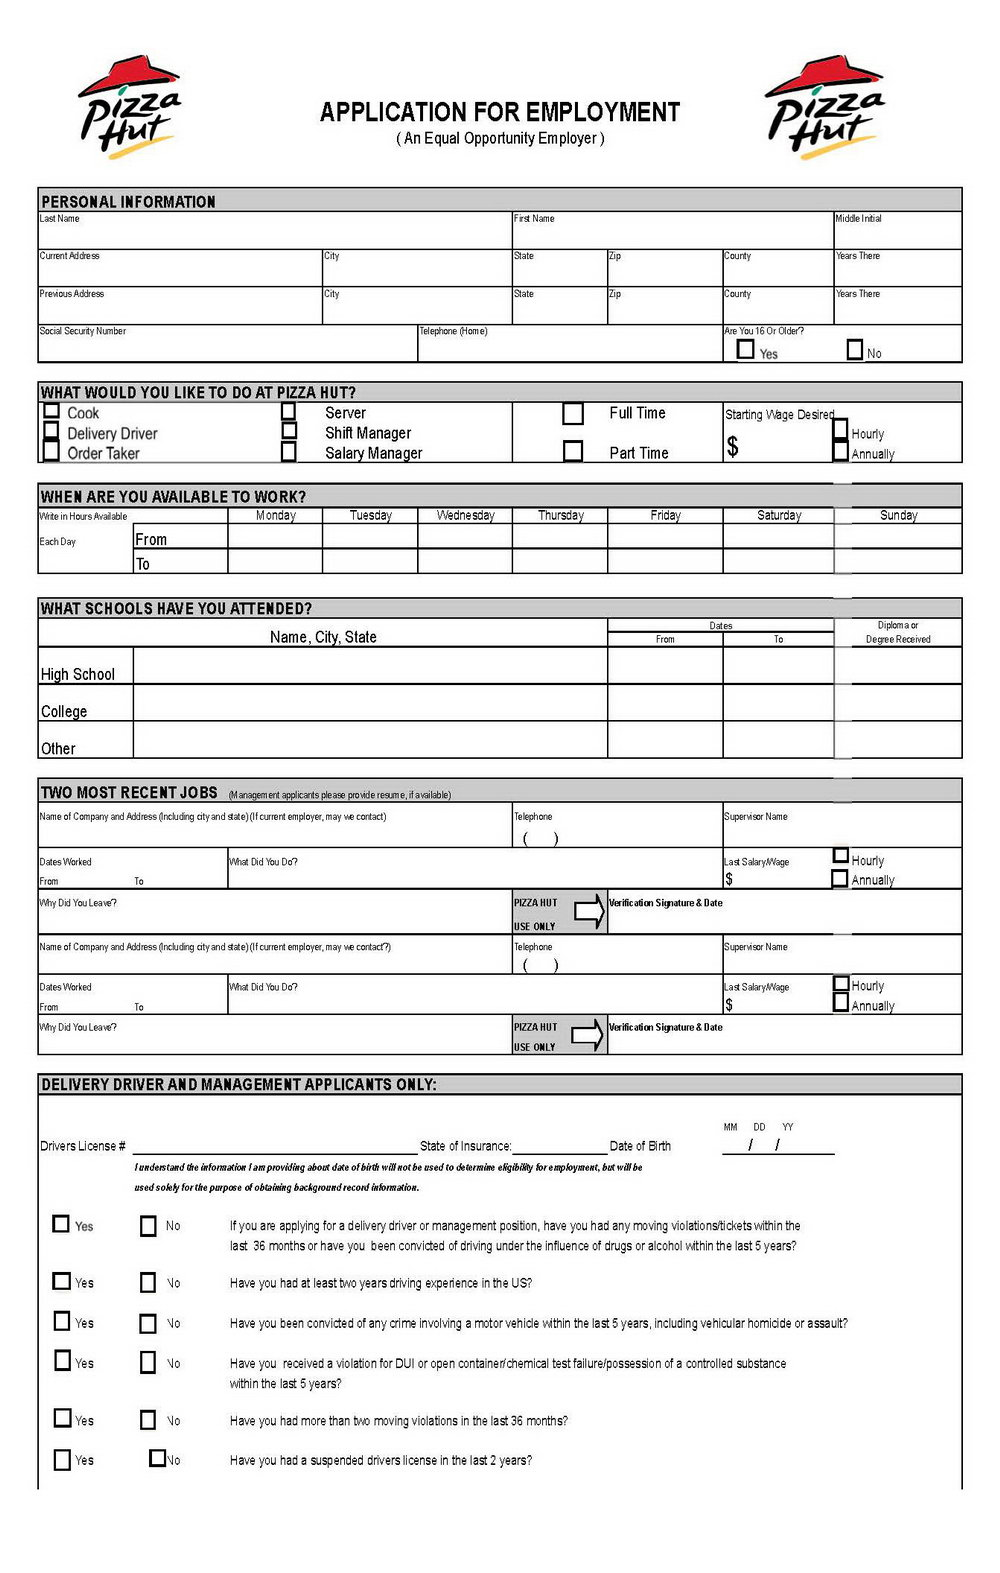 Pizza Hut Jobs Application Form Online